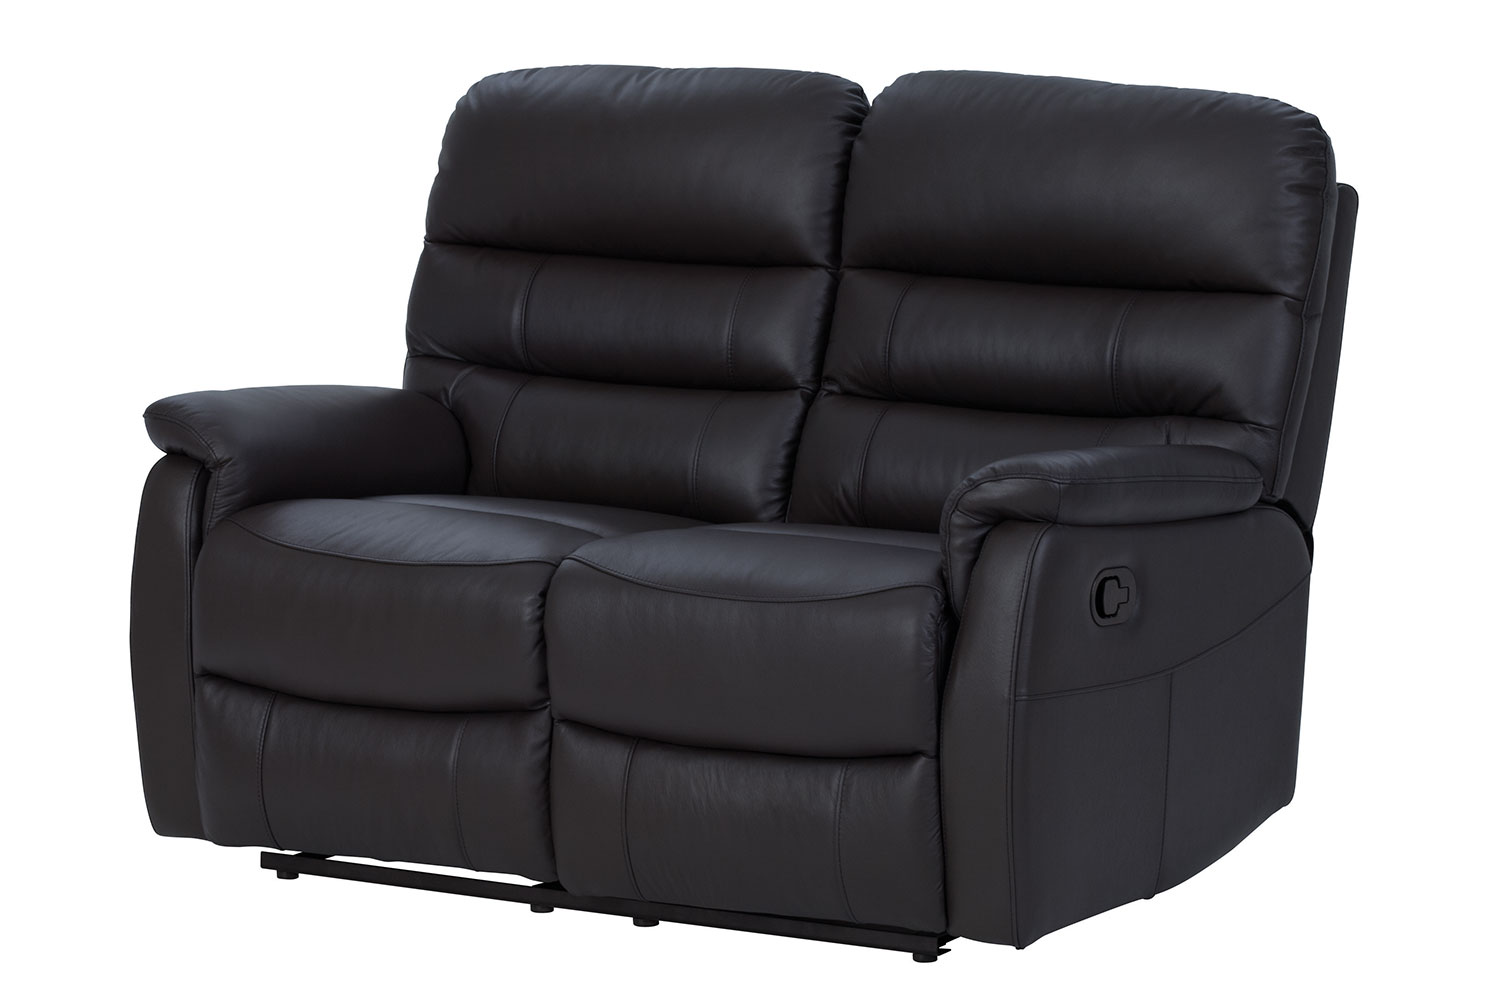 2 Seater Recliner Lounge Luna 2 Seater Leather Recliner Sofa By Vivin Harvey